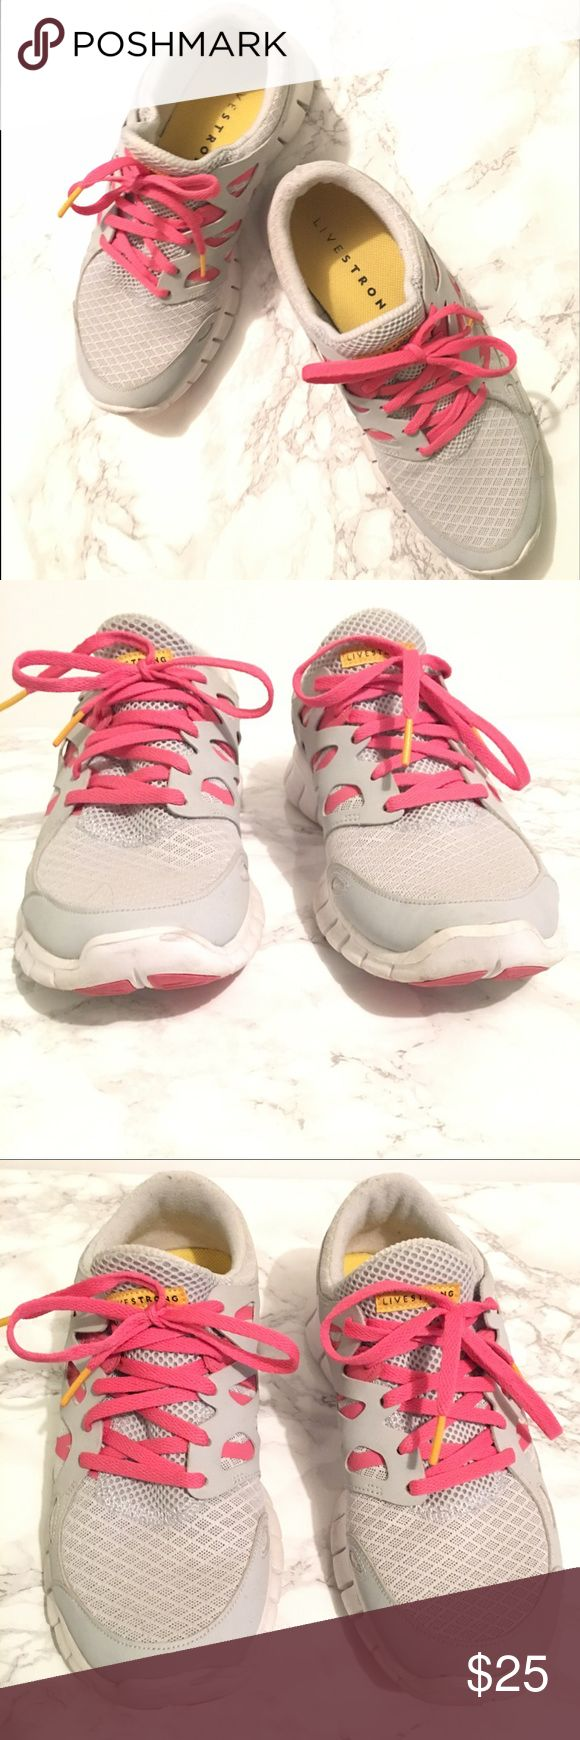 Nike Livestrong Sneakers Nike+ Gray slip on Nike Livestrong sneakers with pink accent.  Lightly worn. Sneakers show usage but in fairly good condition.  Color may be slightly different than image.  Size 9. Nike Shoes Sneakers